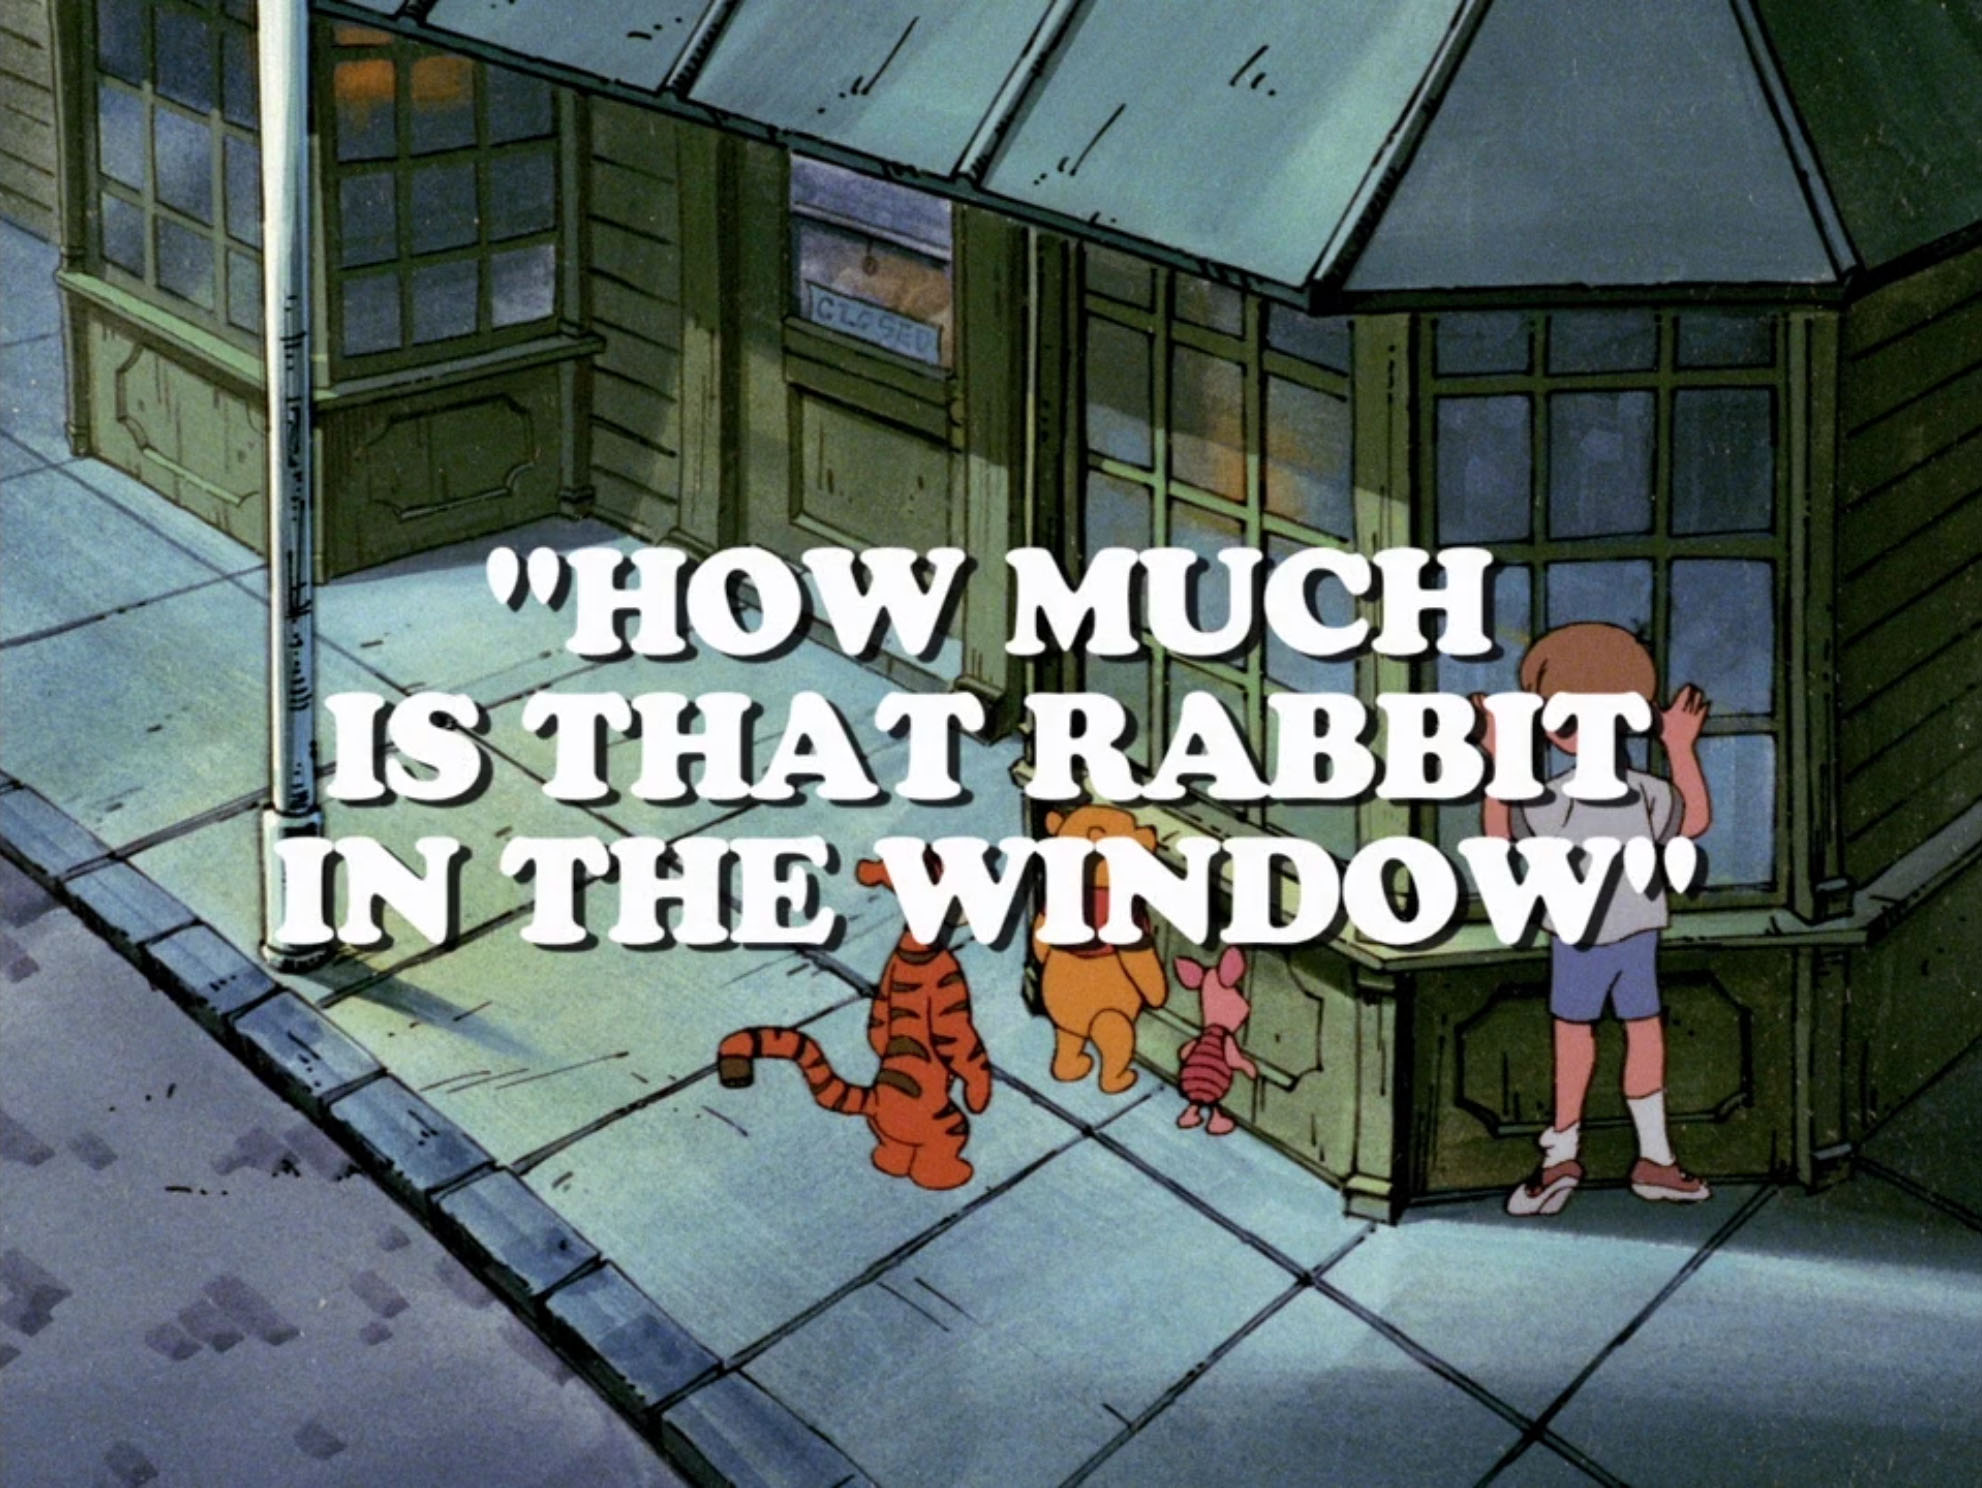 File:How Much is that Rabbit in the Window.jpg